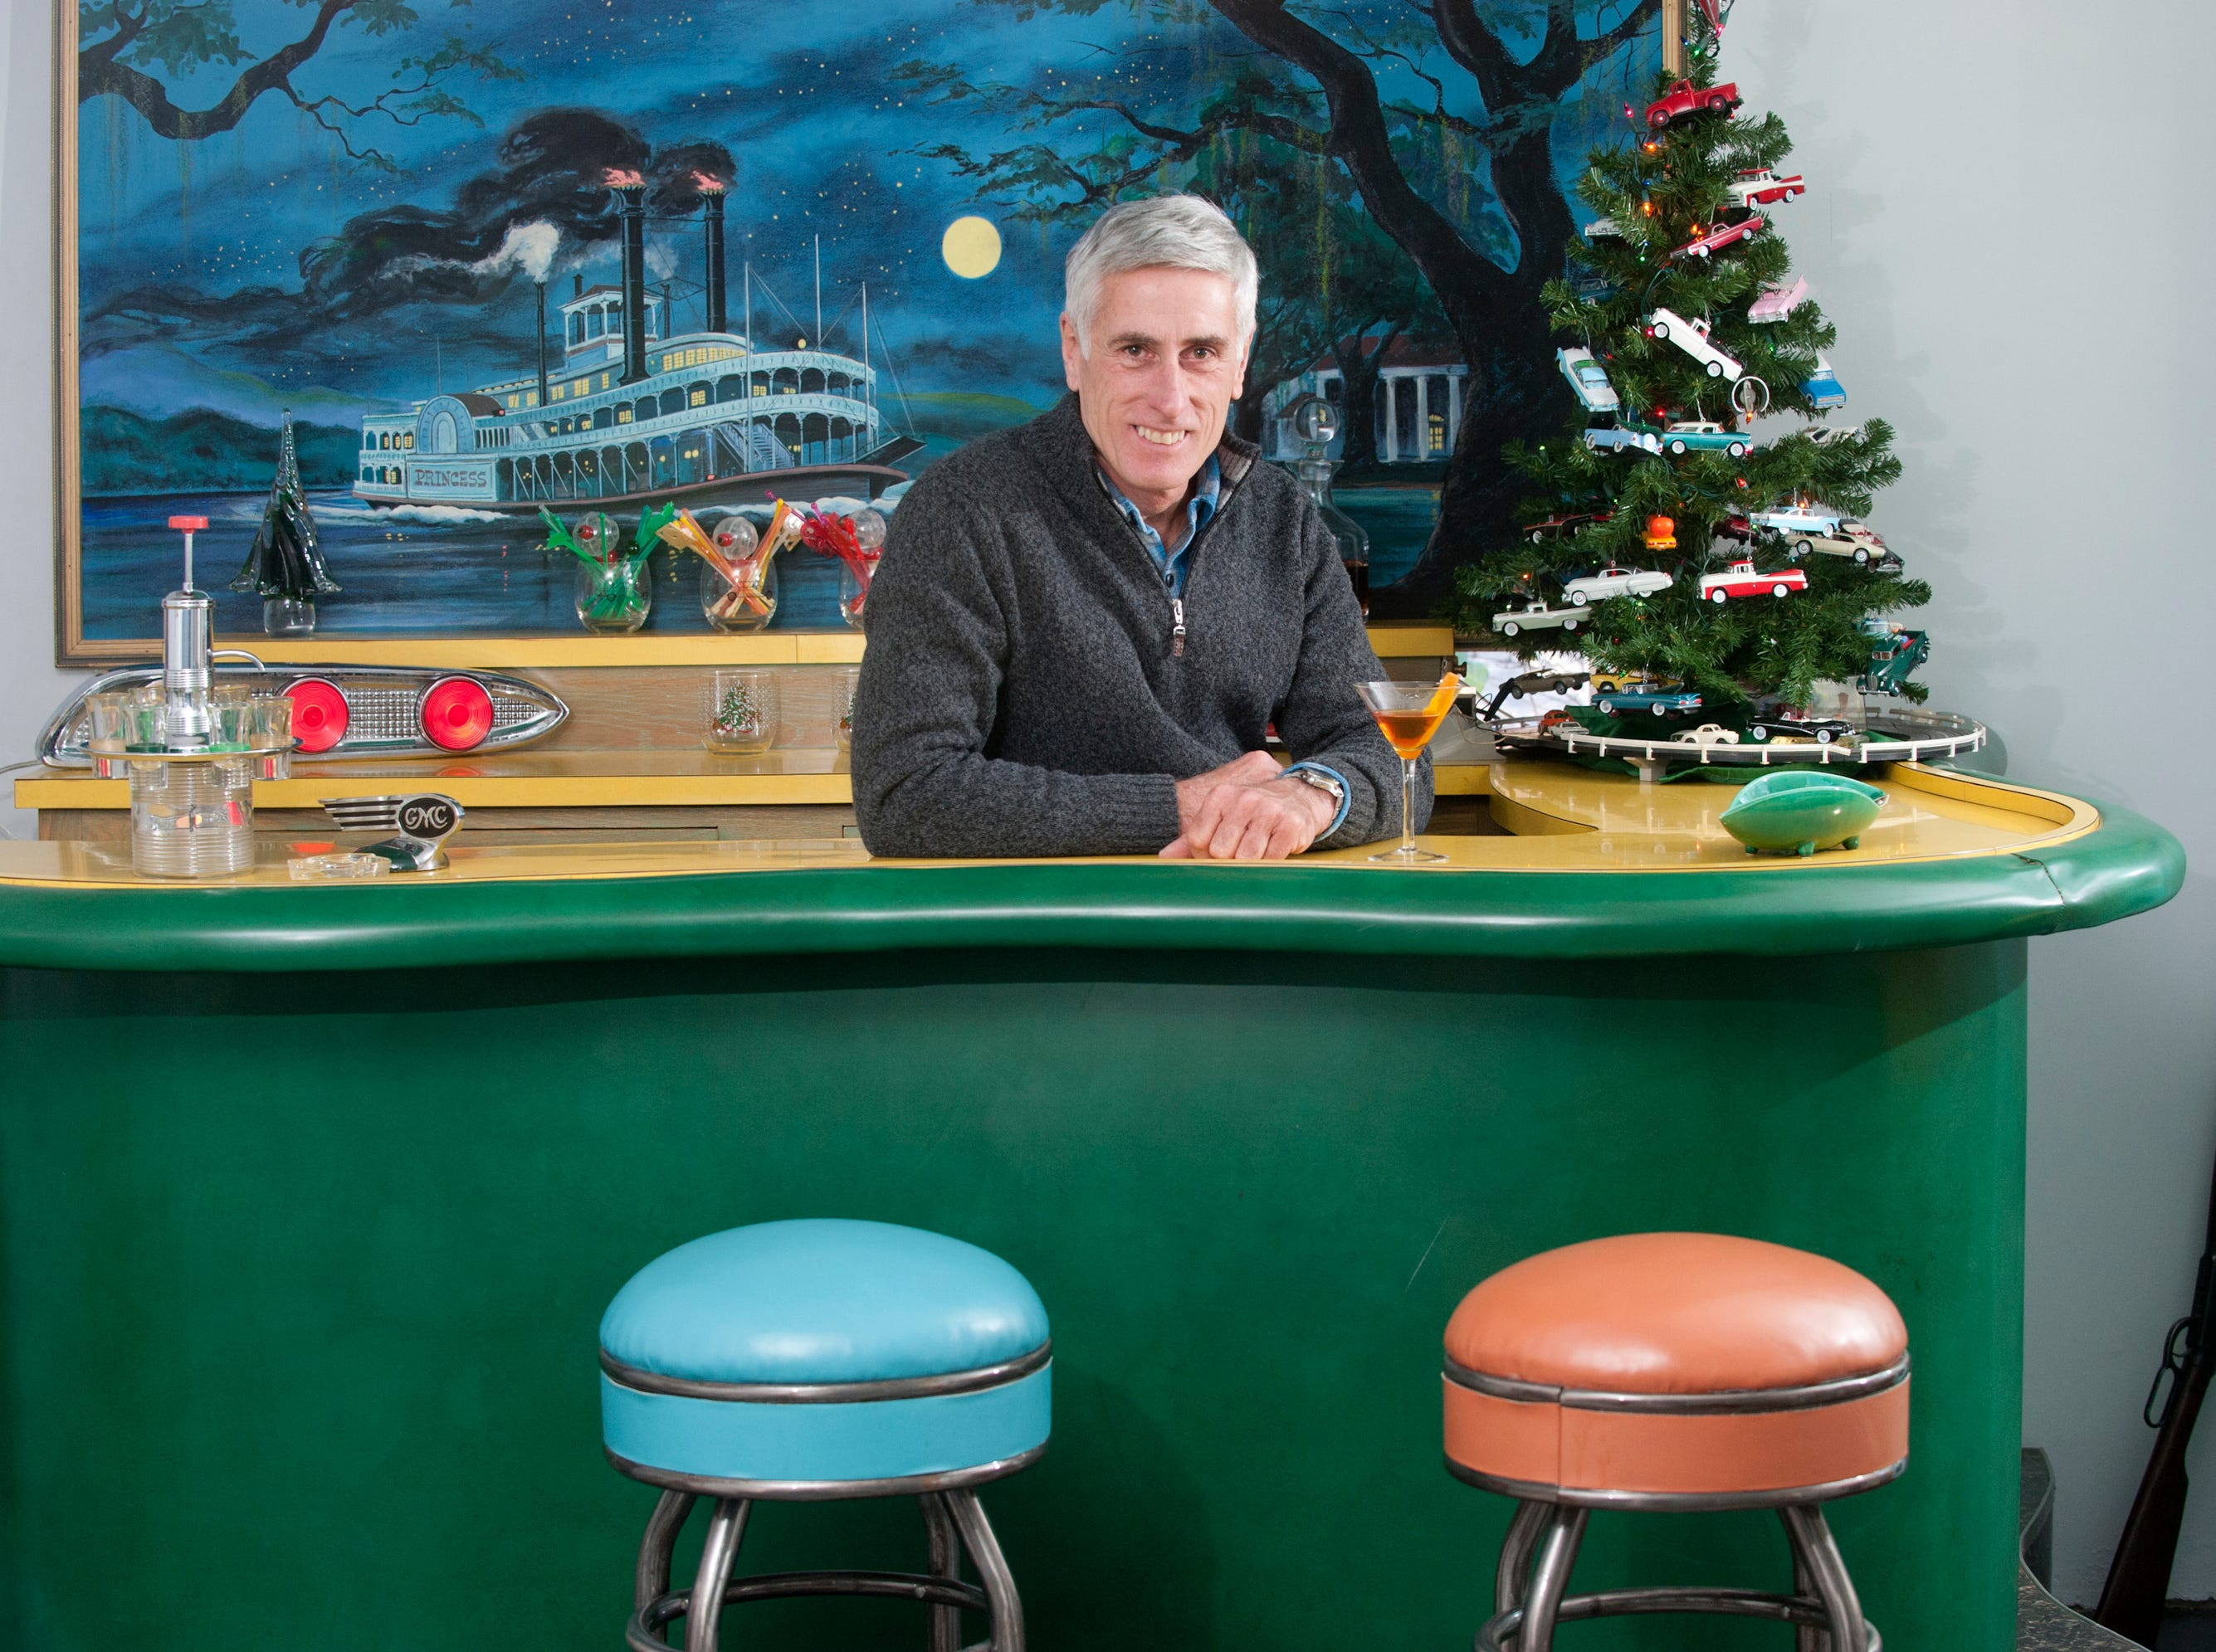 """Tom Cannady relaxes behind the second floor """"Princess"""" bar which was moved from the 1st floor. Behind Cannady is his painting of the riverboat Princess for which the bar is named, and at night is illuminated by blacklight. During the day, the painting fits into a pocket below it revealing a window.10 December 2018"""